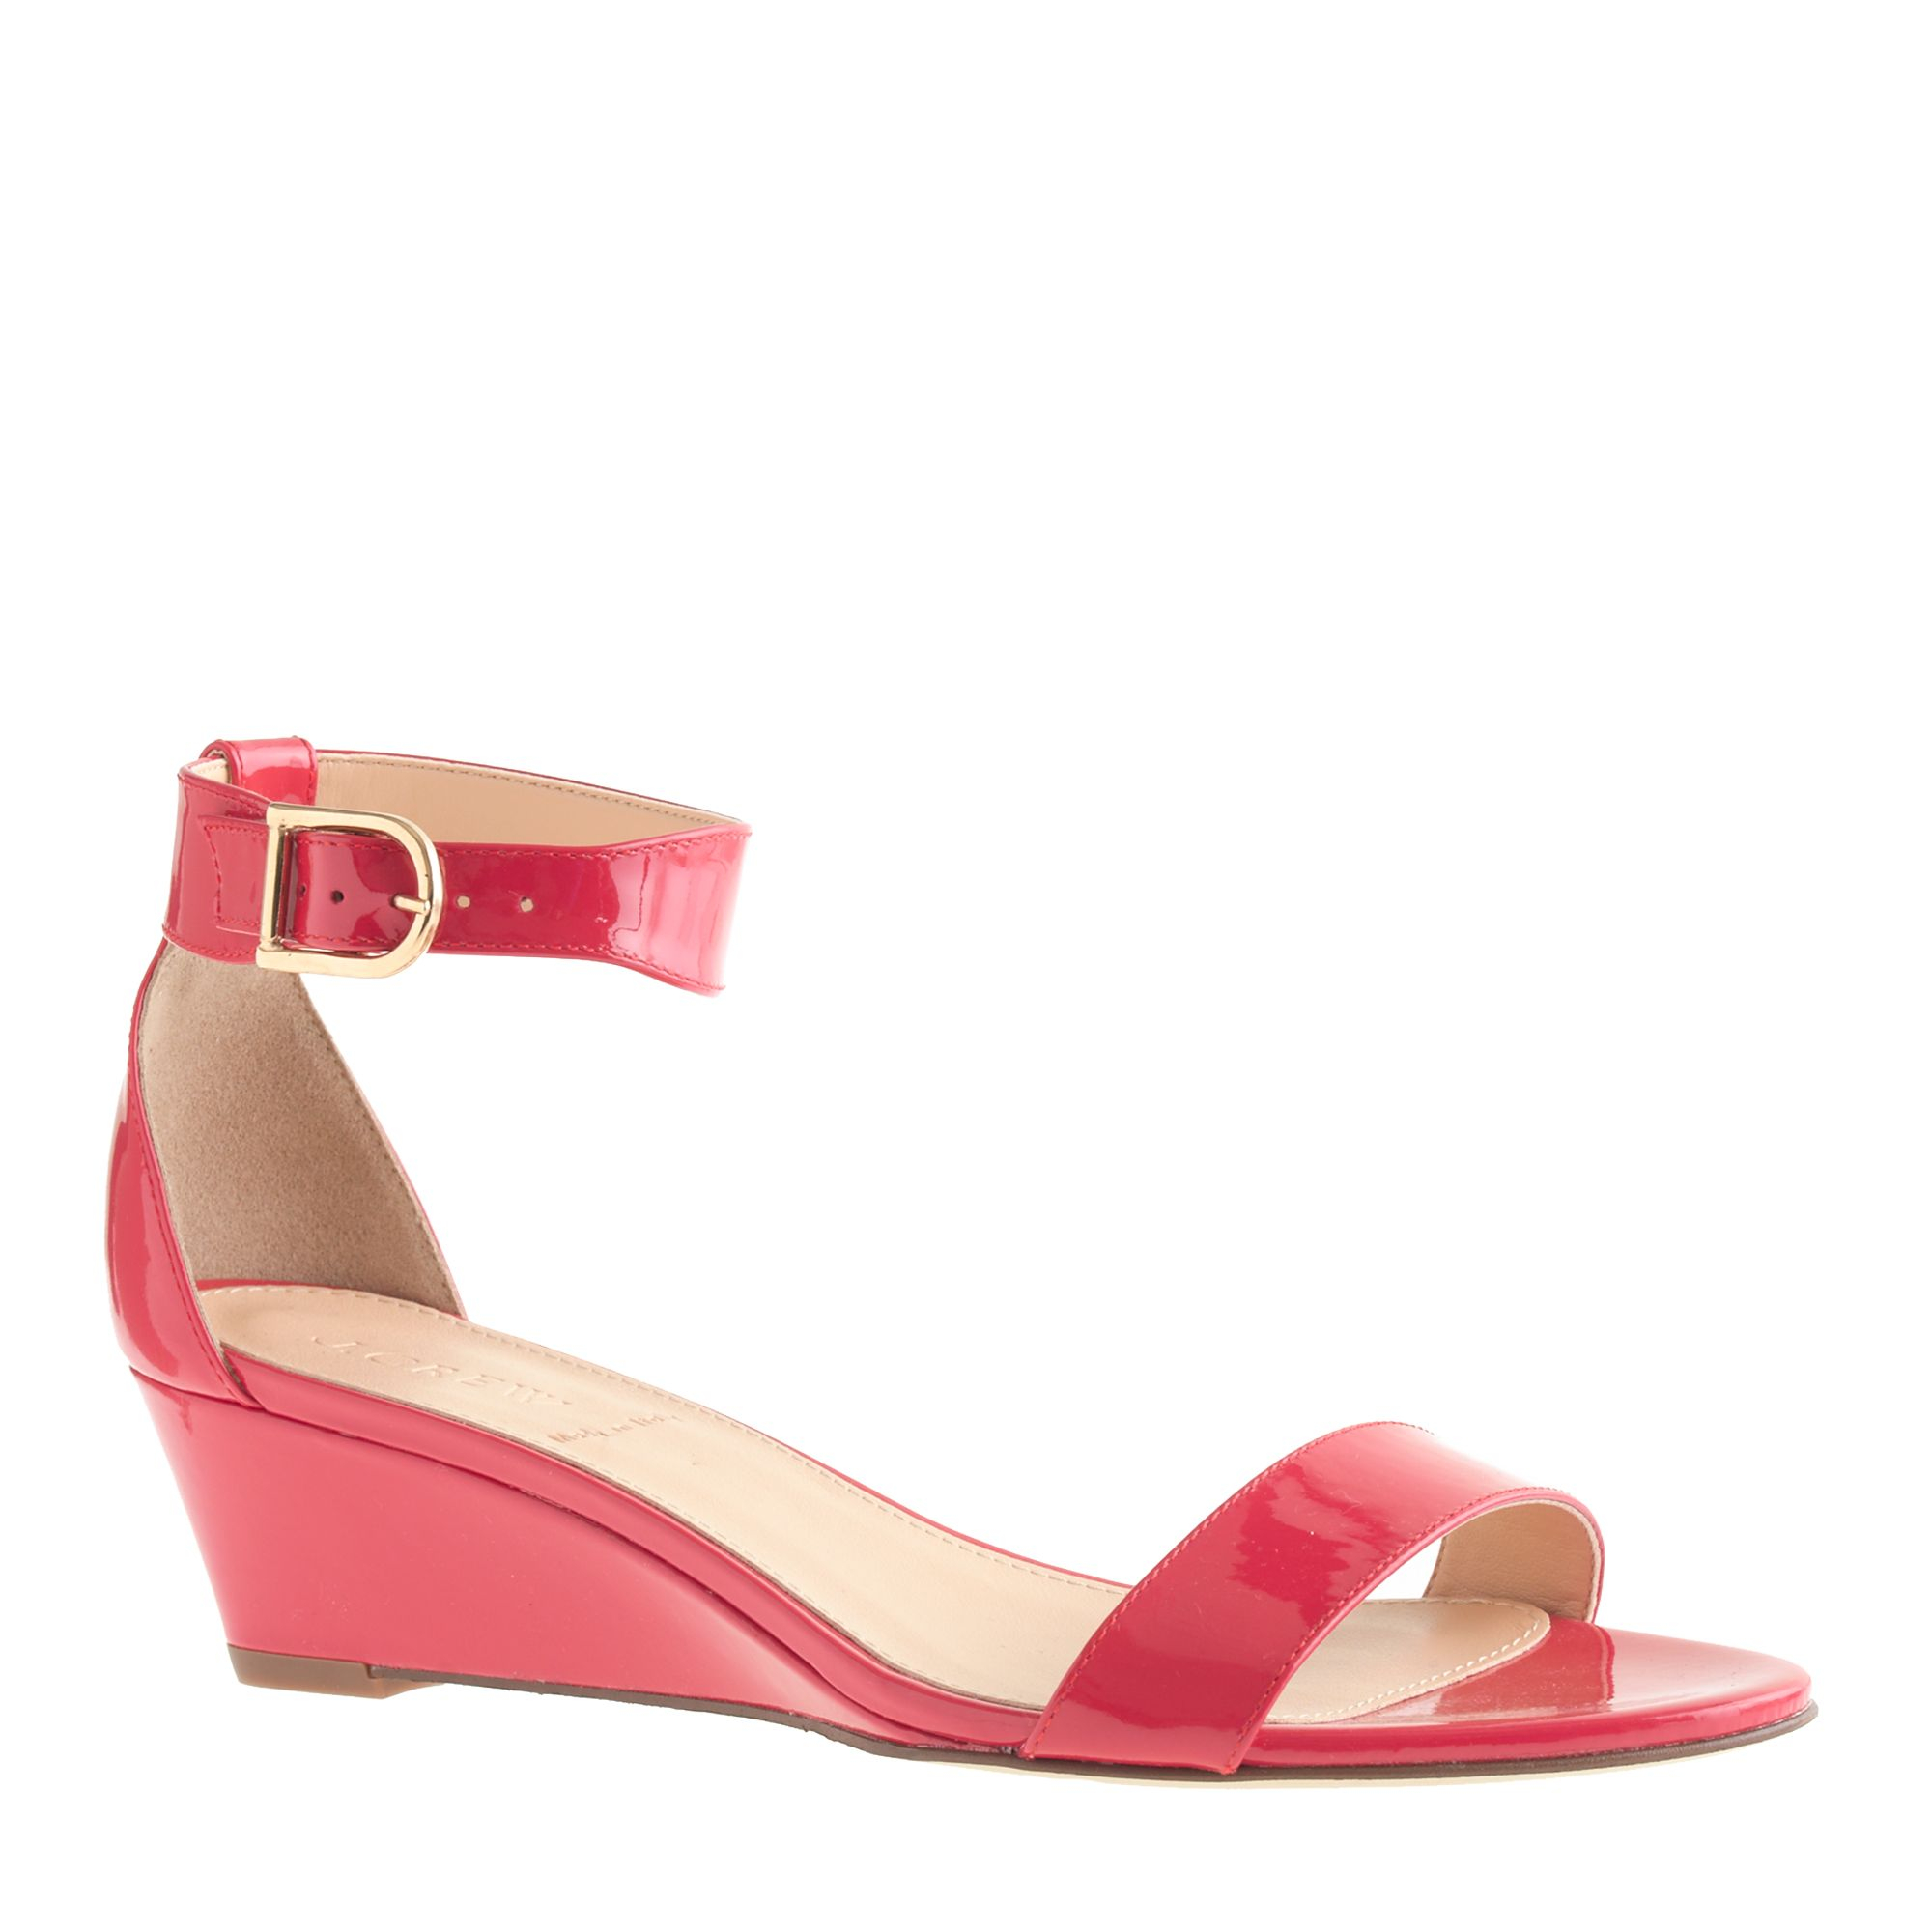 j crew lillian patent low wedges in pink bright poppy lyst